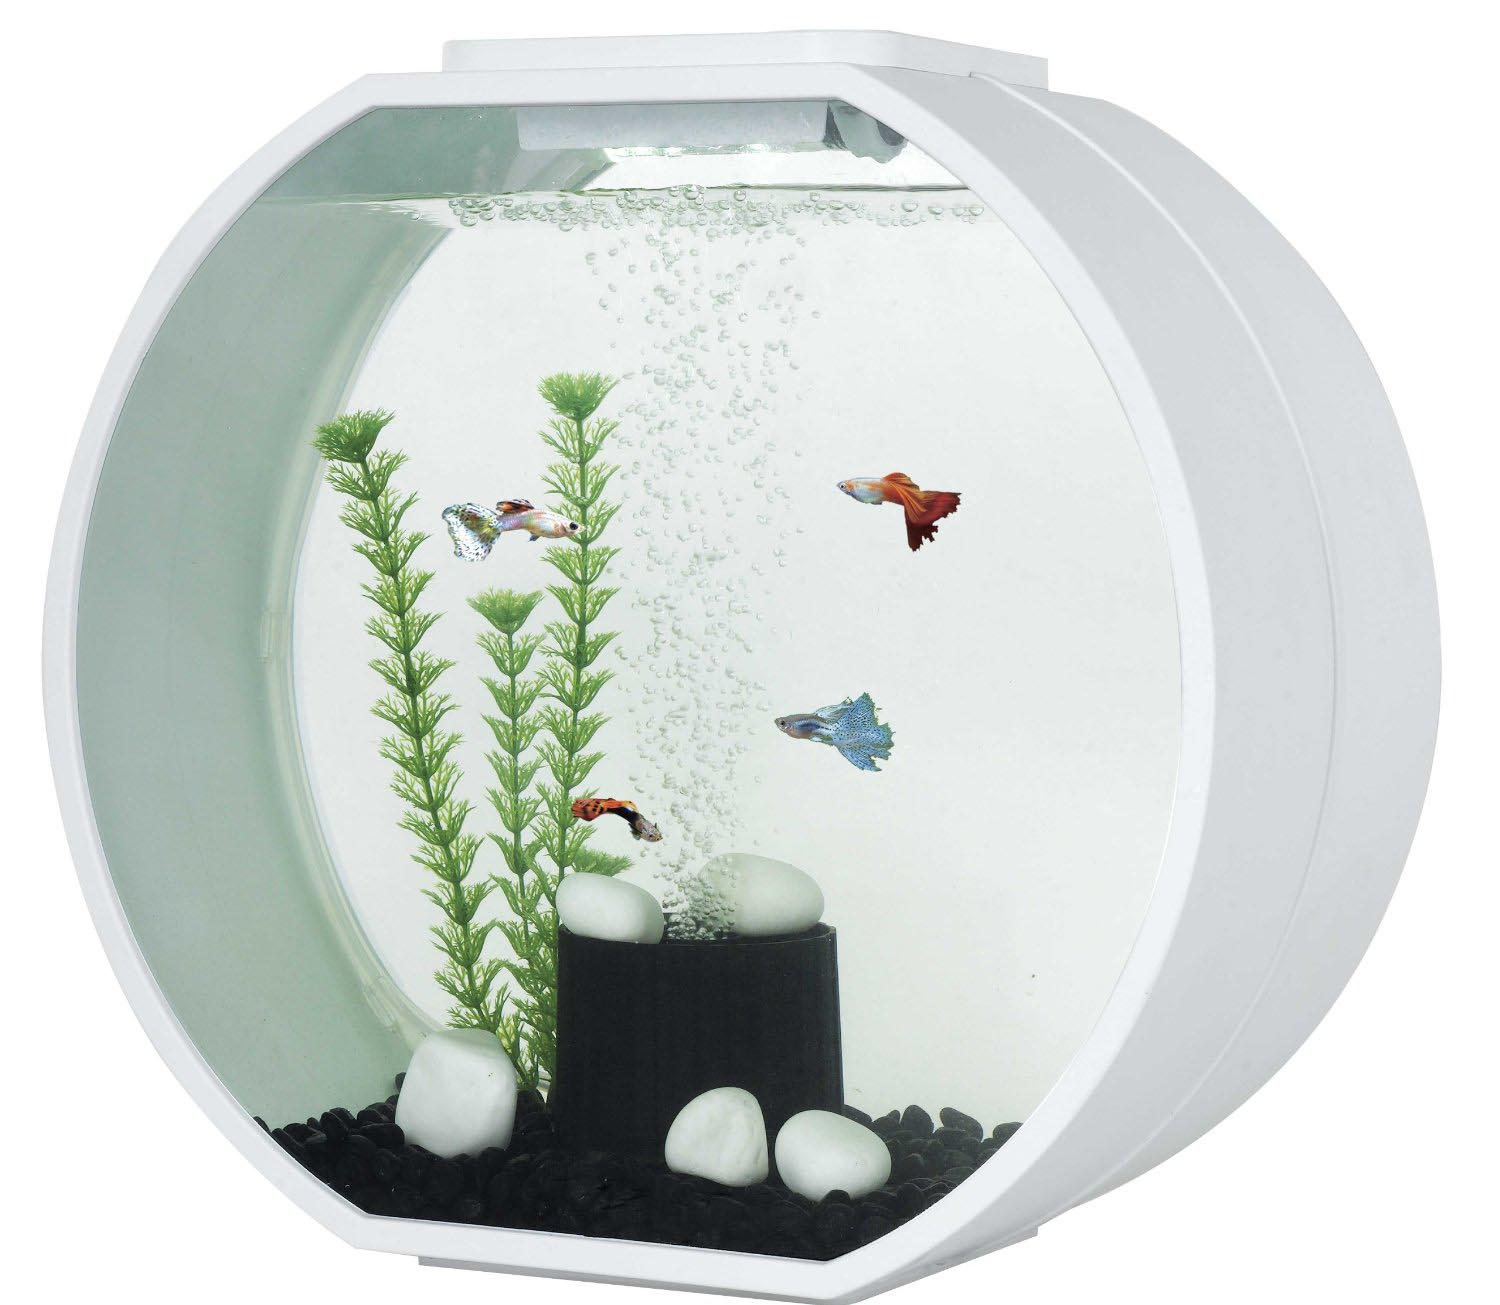 Small fish aquarium tanks aquarium design ideas for Filtre aquarium rond